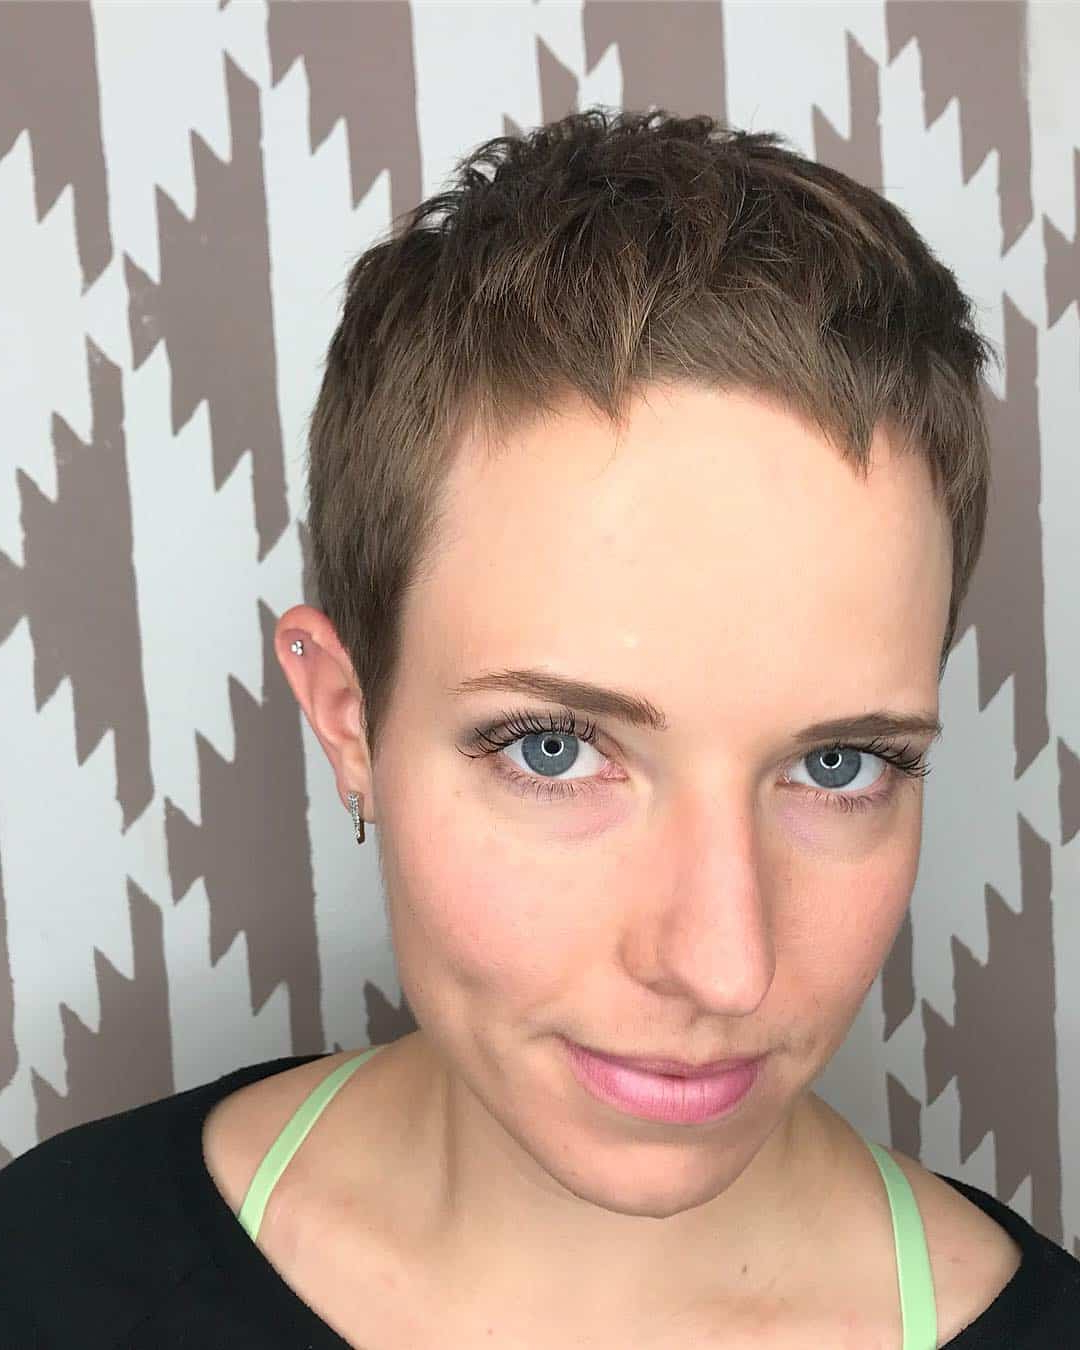 19 Very Short Haircuts For Women Trending In 2021 Pertaining To Most Up To Date Disconnected Pixie Hairstyles (View 14 of 20)